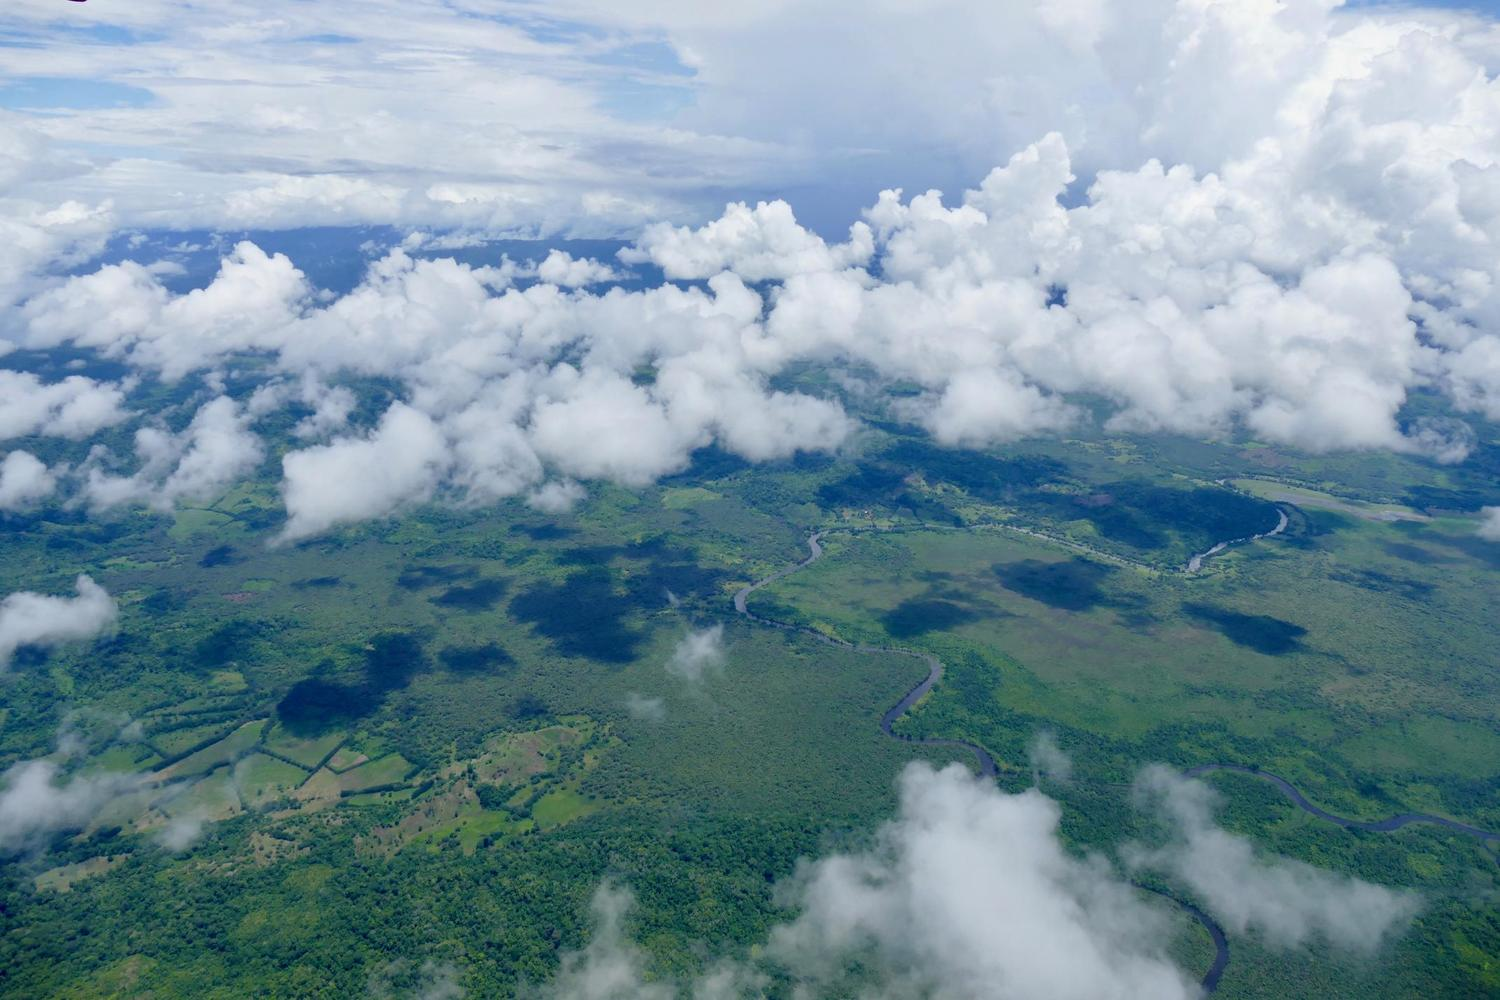 Flying over the central valley, Costa Rica